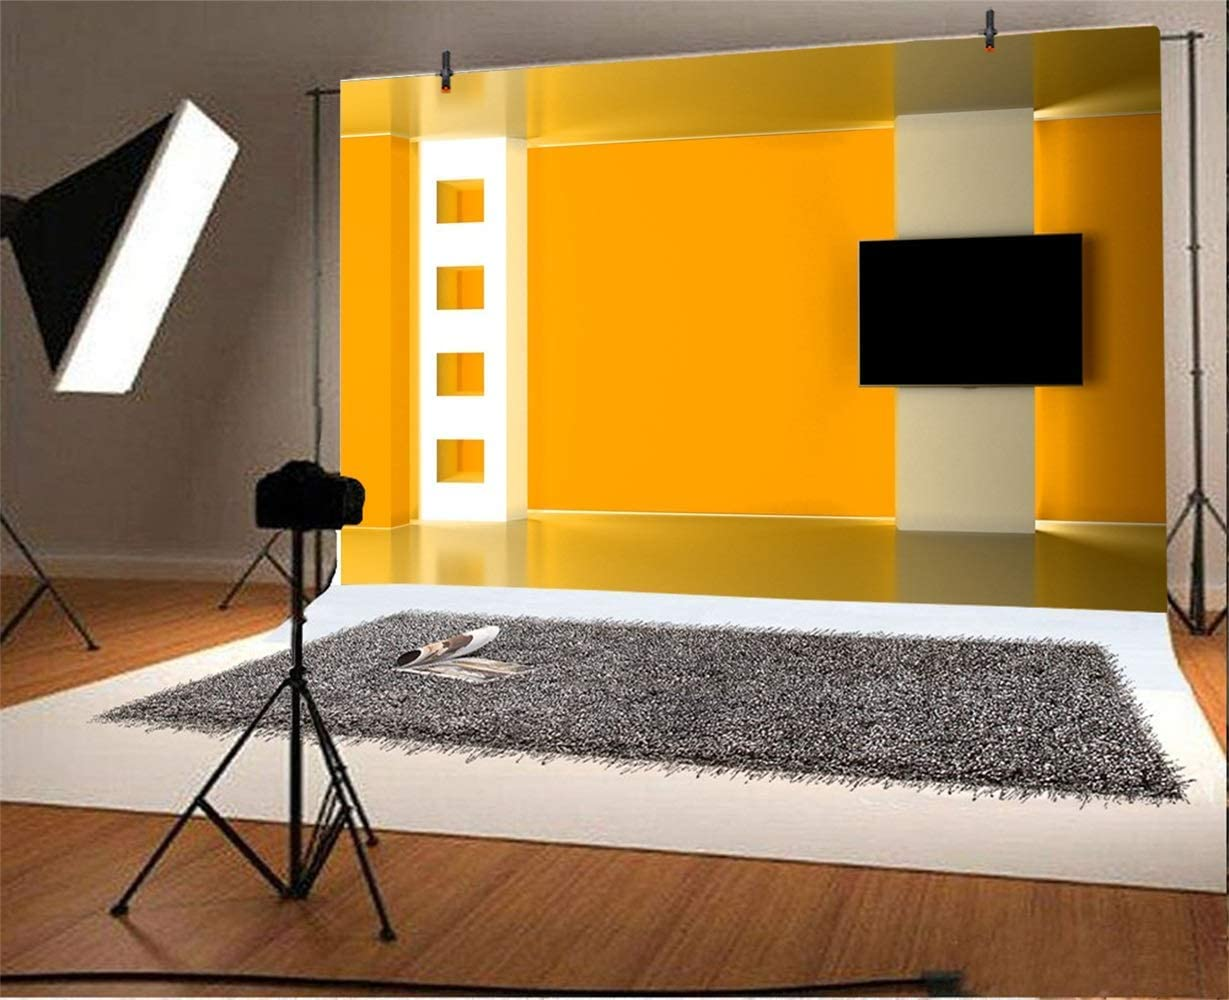 GoEoo News Room Interior Backdrop Vinyl 10x7ft Orange Broadcasting Room Wall Television Compere Photography Background TV Station Programing Live Video Banner Background Wall Photocall